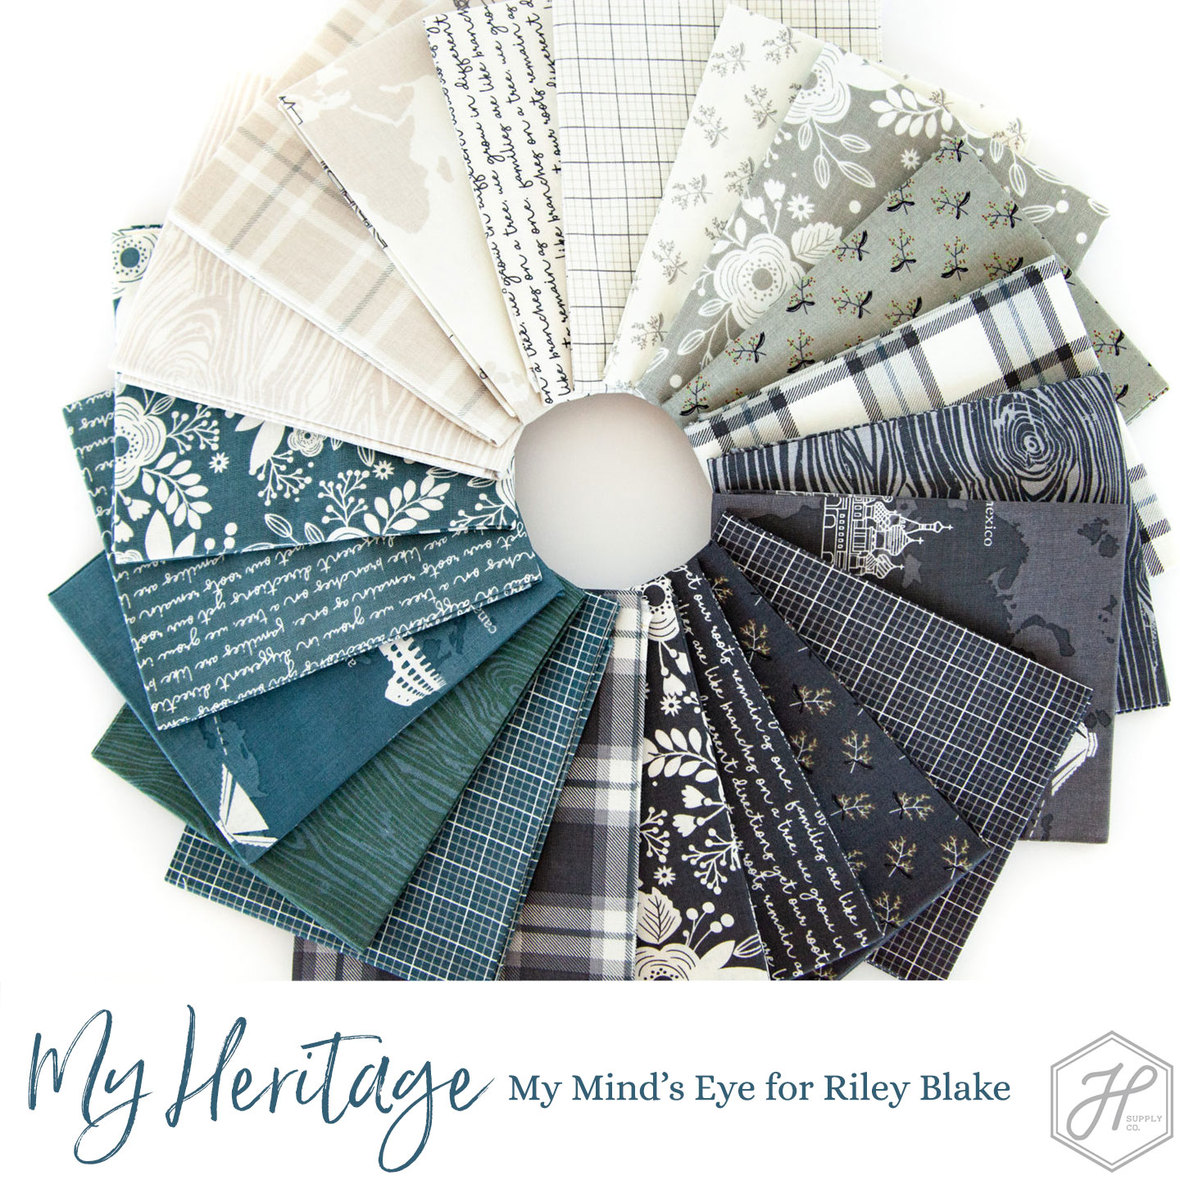 My-Heritage-Fabric-My-Minds-Eye-for-Riley-Blake-at-Hawthorne-Supply-Co